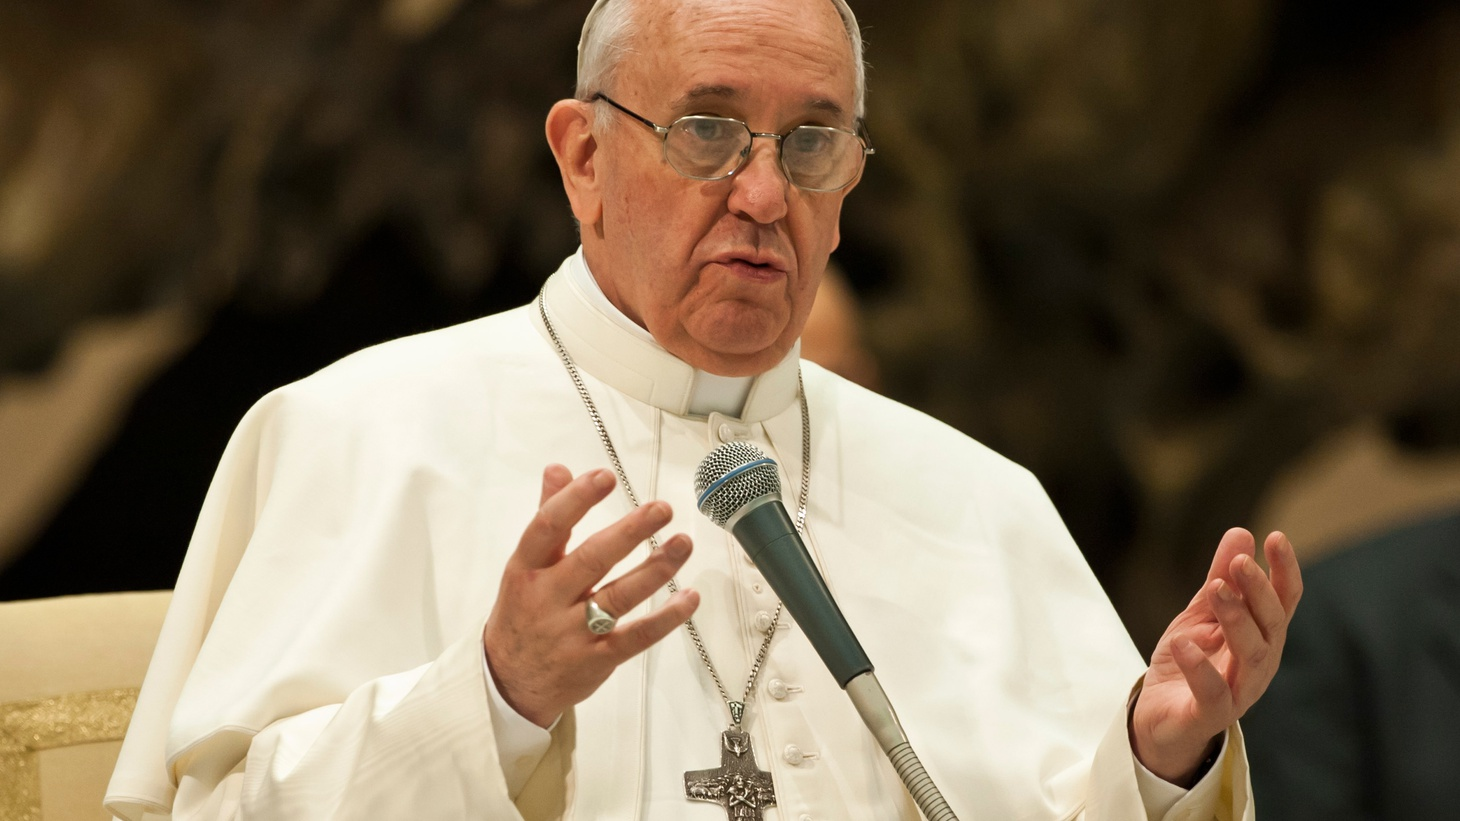 Pope Francis says  priests can forgive women  who've had abortions, considered a grave sin by the Catholic Church. Over the next Holy Year, women who repent and confess can be absolved by any ordained priest. Reformers within the church see this as an olive branch in the divisive debate over abortion.